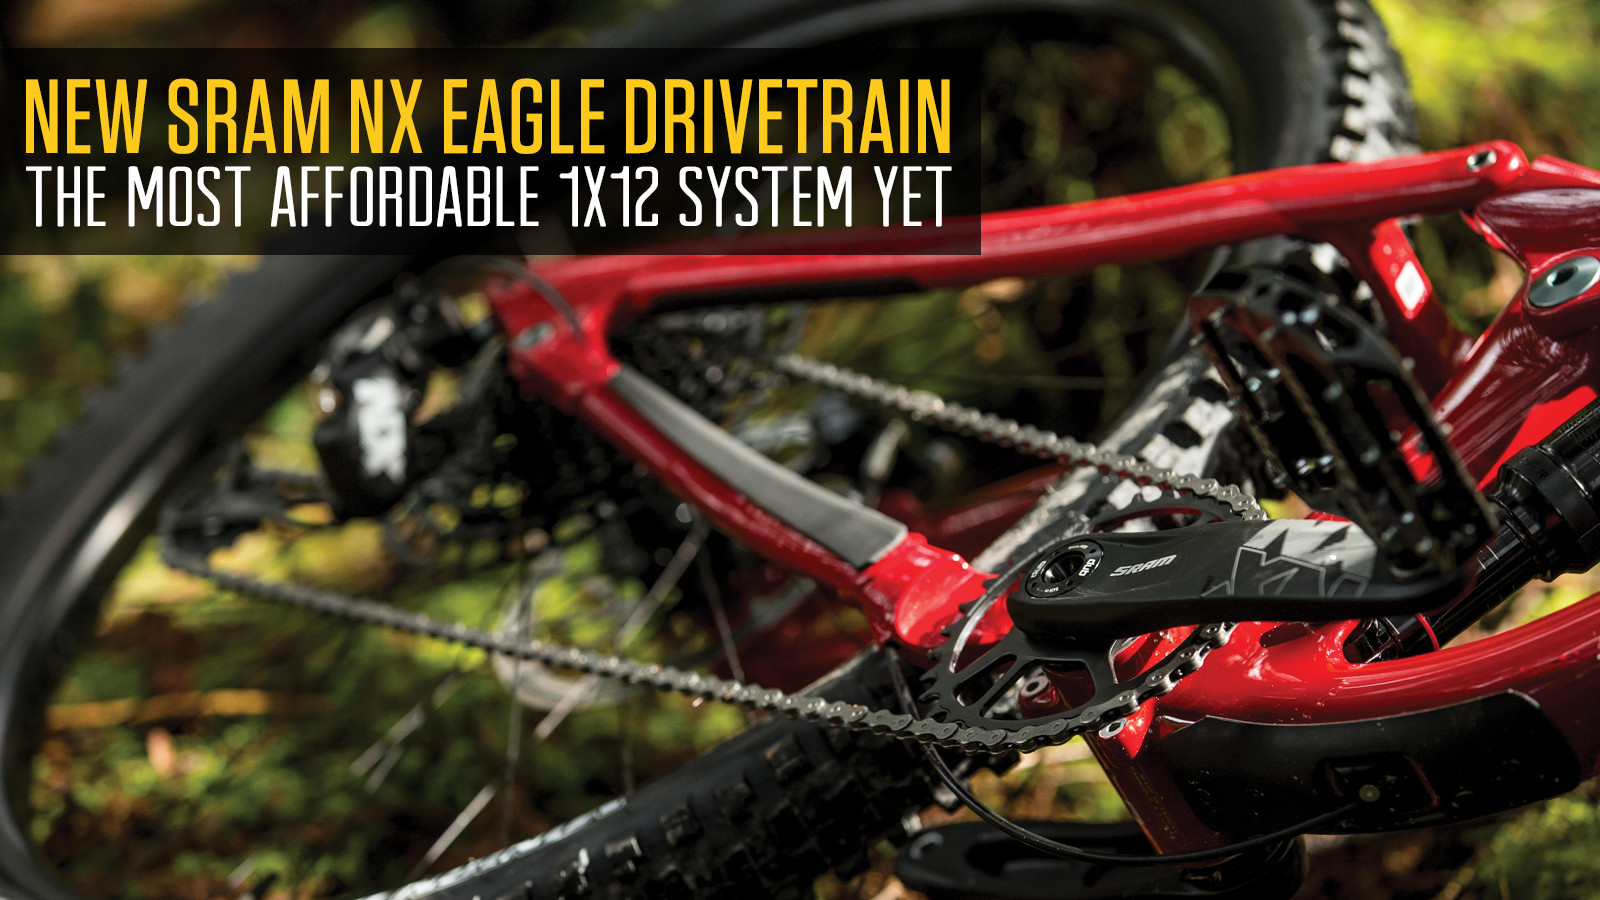 SRAM's New NX Eagle 1x12 Drivetrain is the Most Affordable Yet